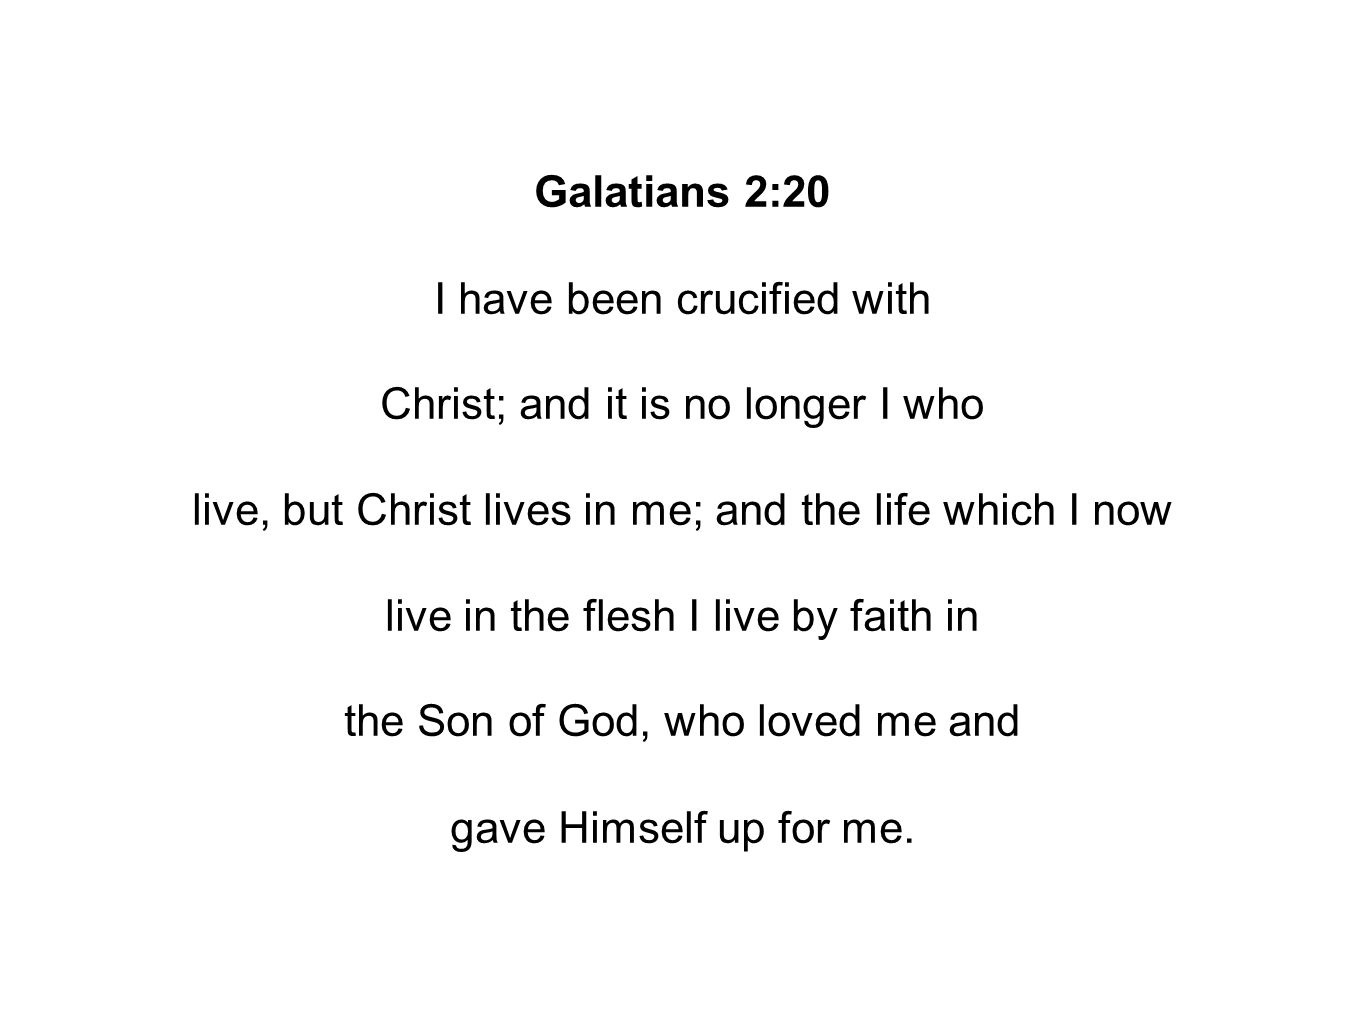 Galatians 2:20 I have been crucified with Christ; and it is no longer I who live, but Christ lives in me; and the life which I now live in the flesh I live by faith in the Son of God, who loved me and gave Himself up for me.